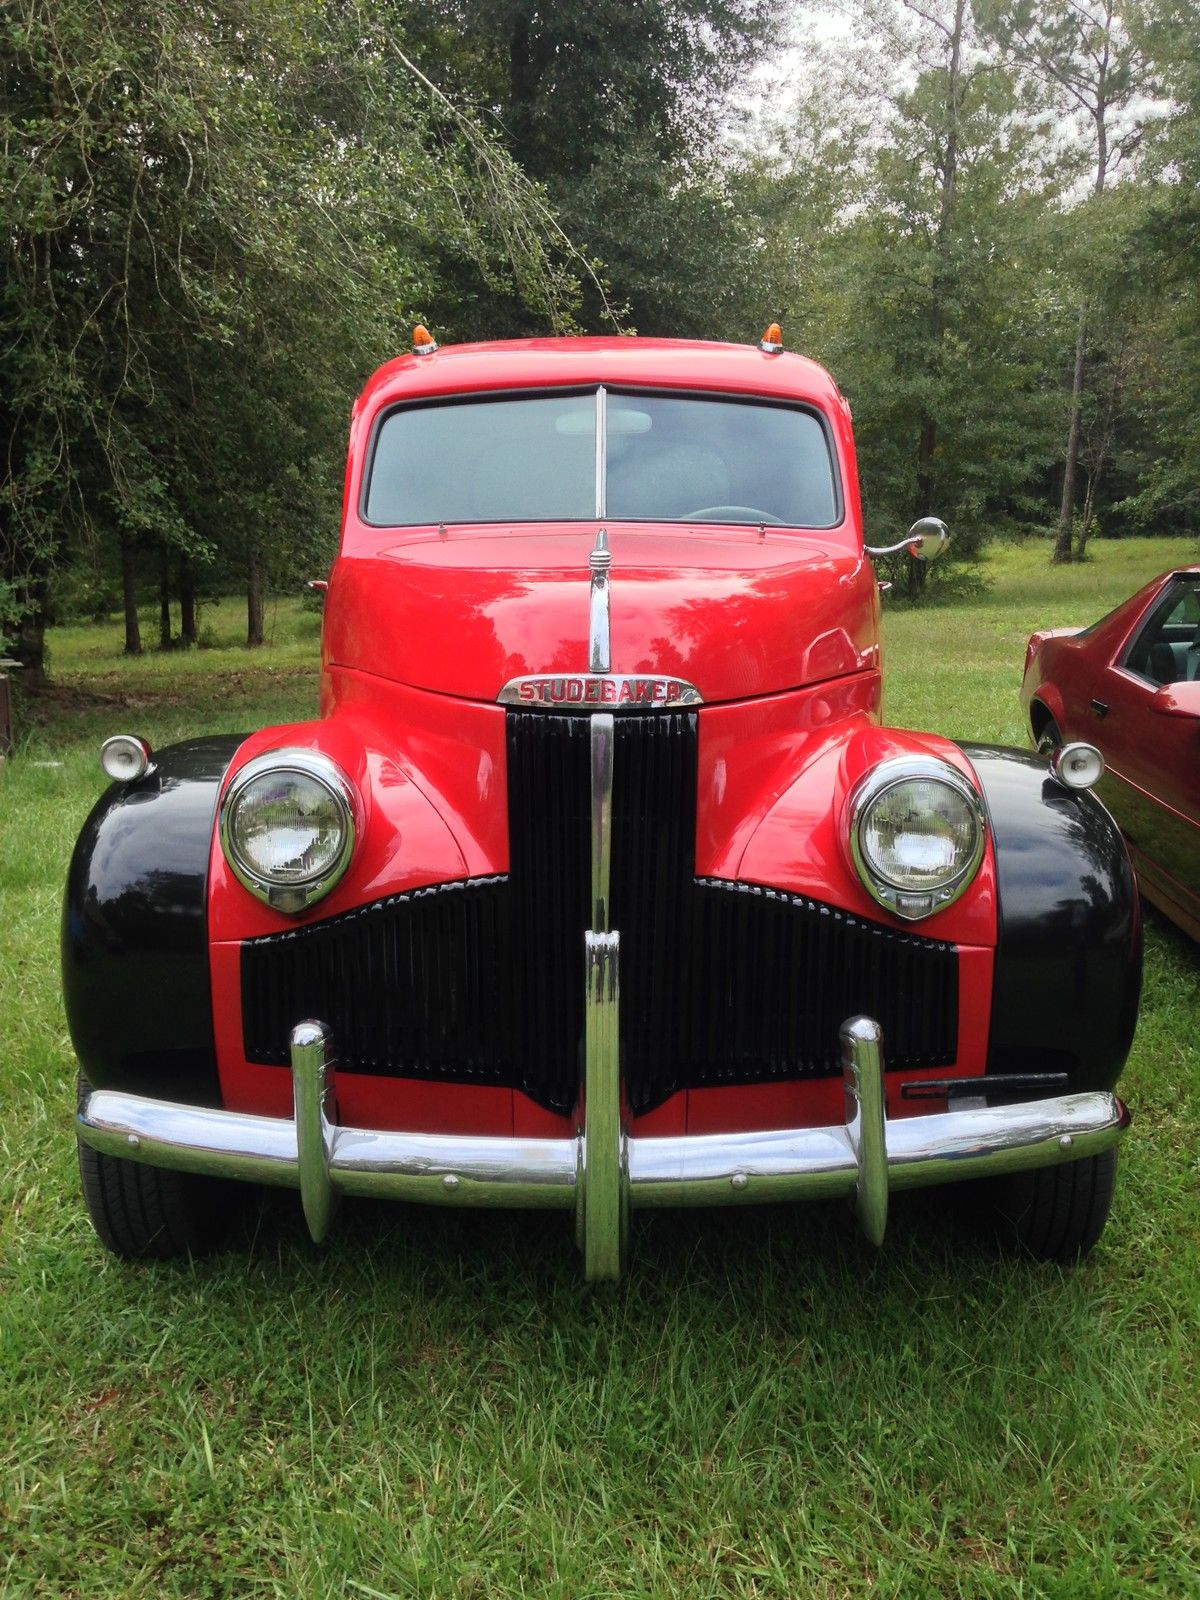 1947 Studebaker 1/2 ton pickup for sale